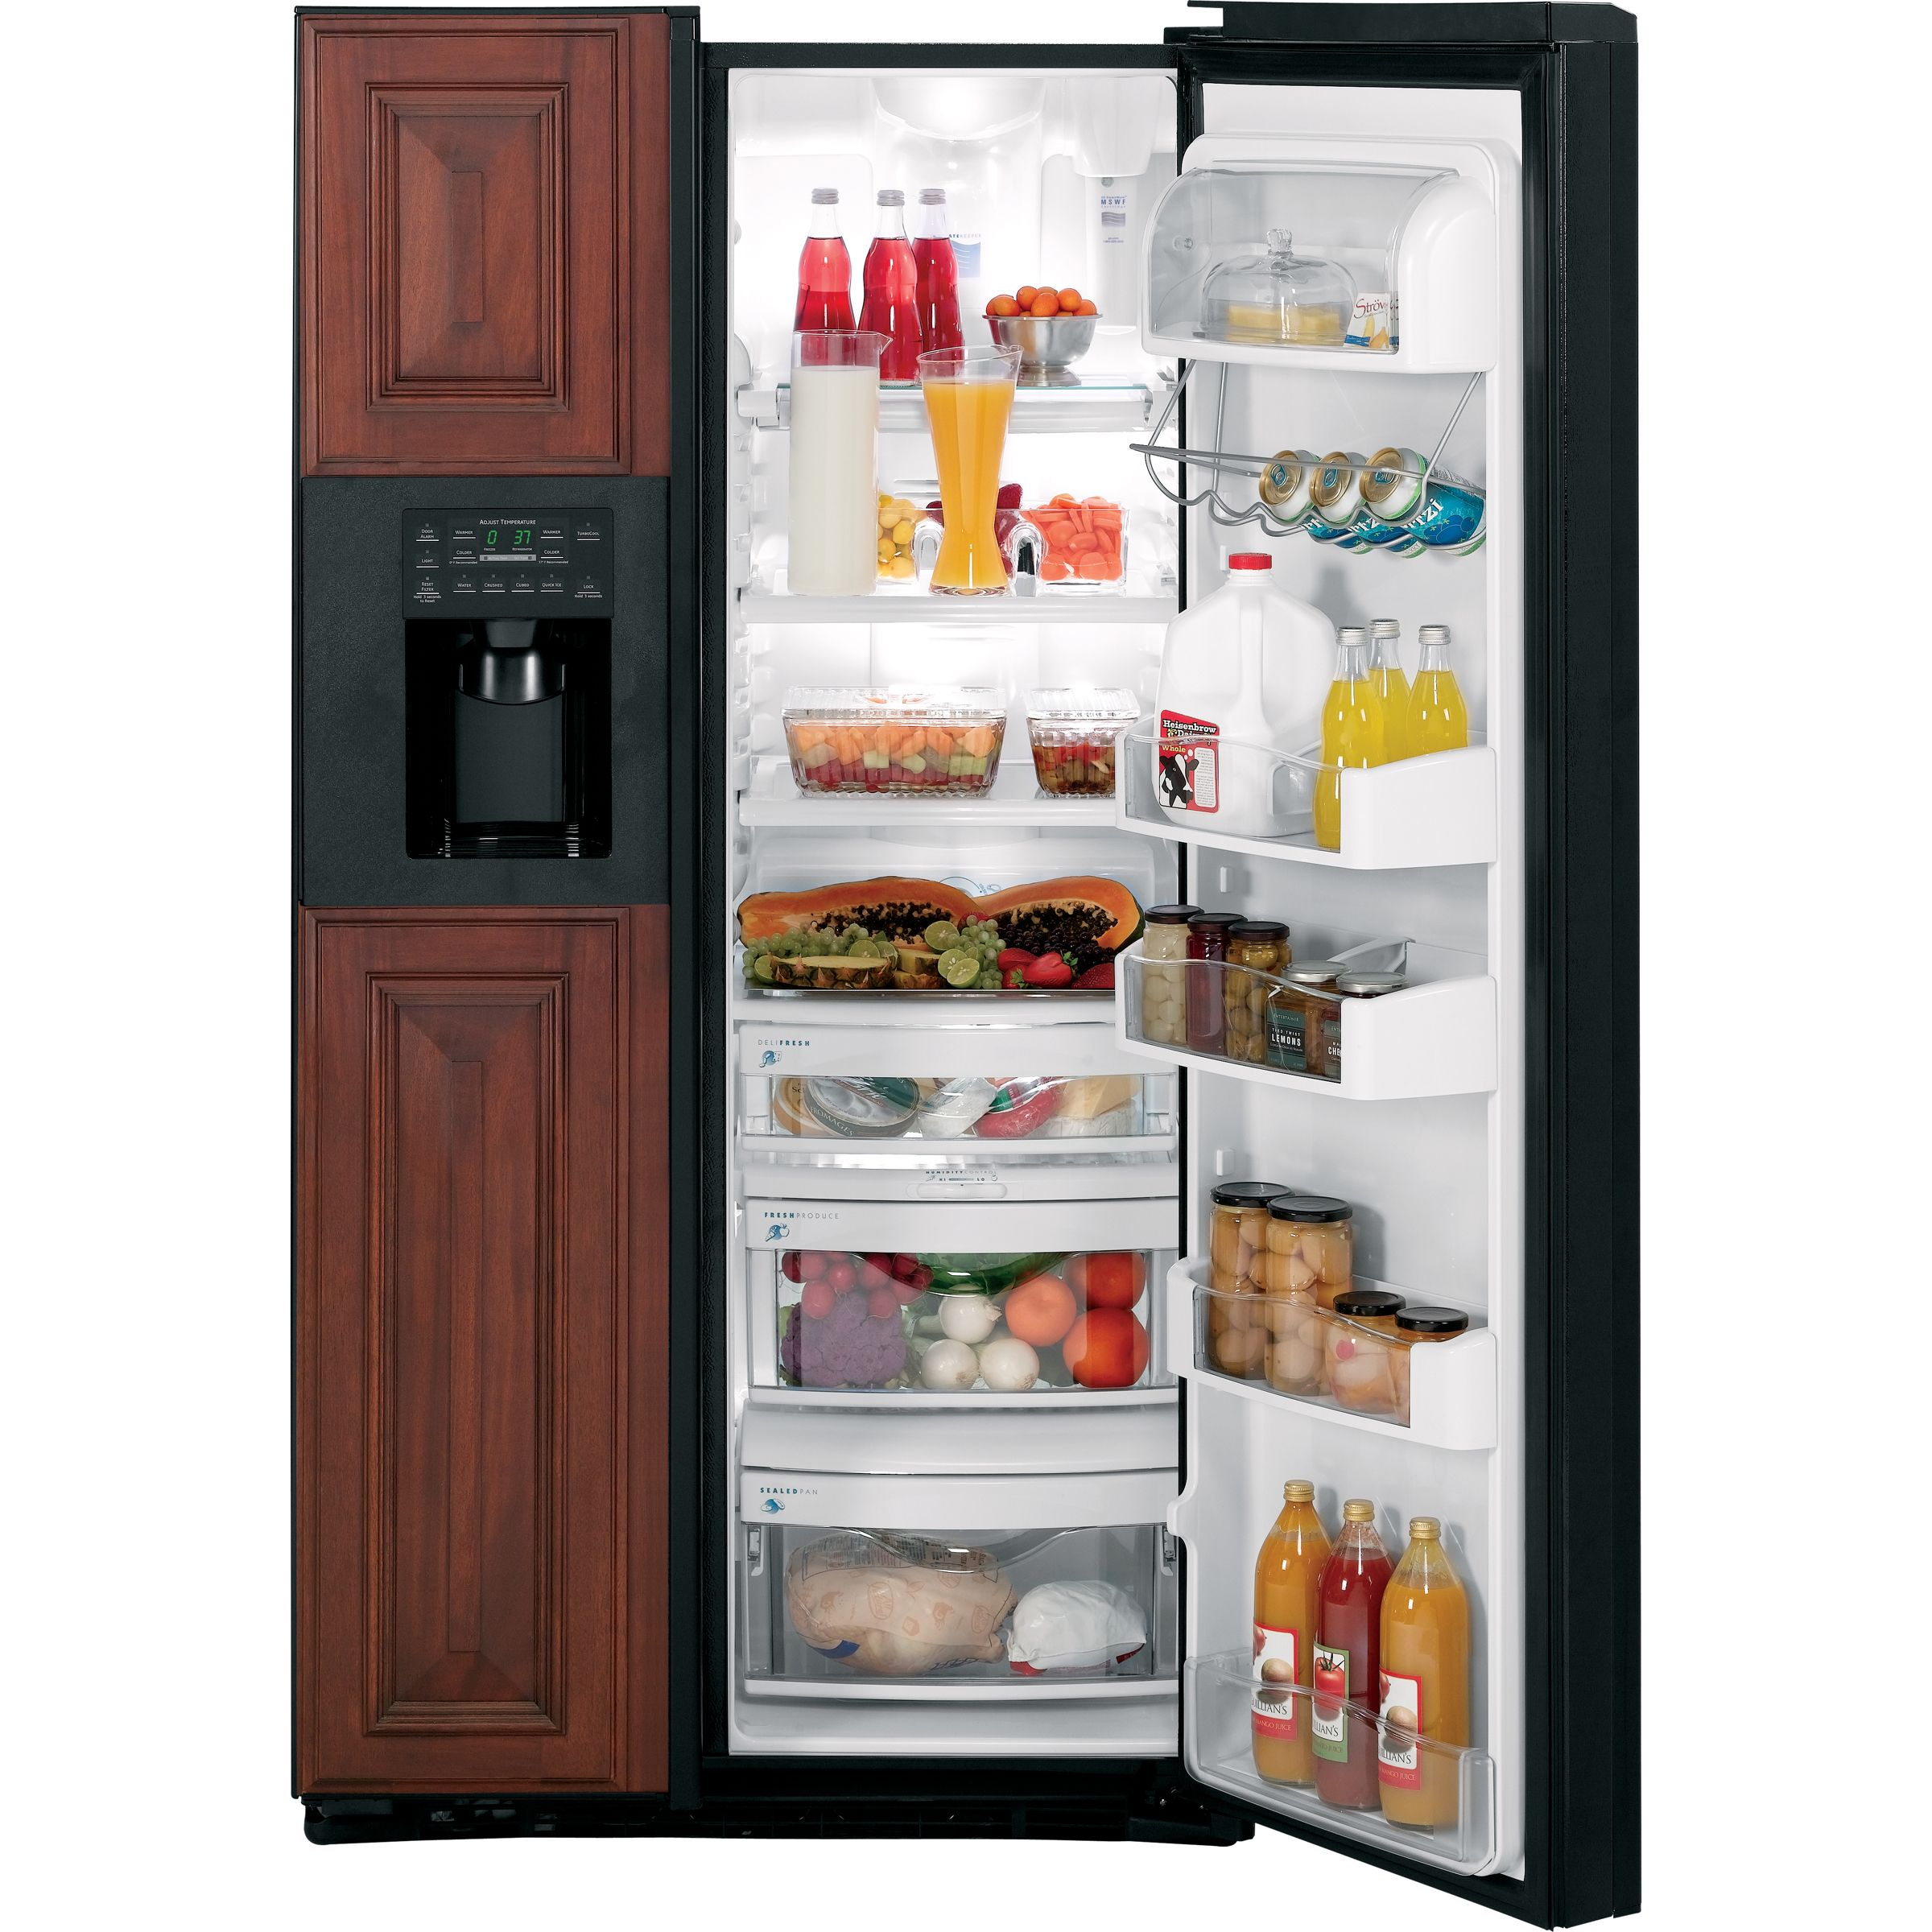 GE Profile Profile™ Series 23.3 cu. ft. Counter Depth Side-By-Side Refrigerator